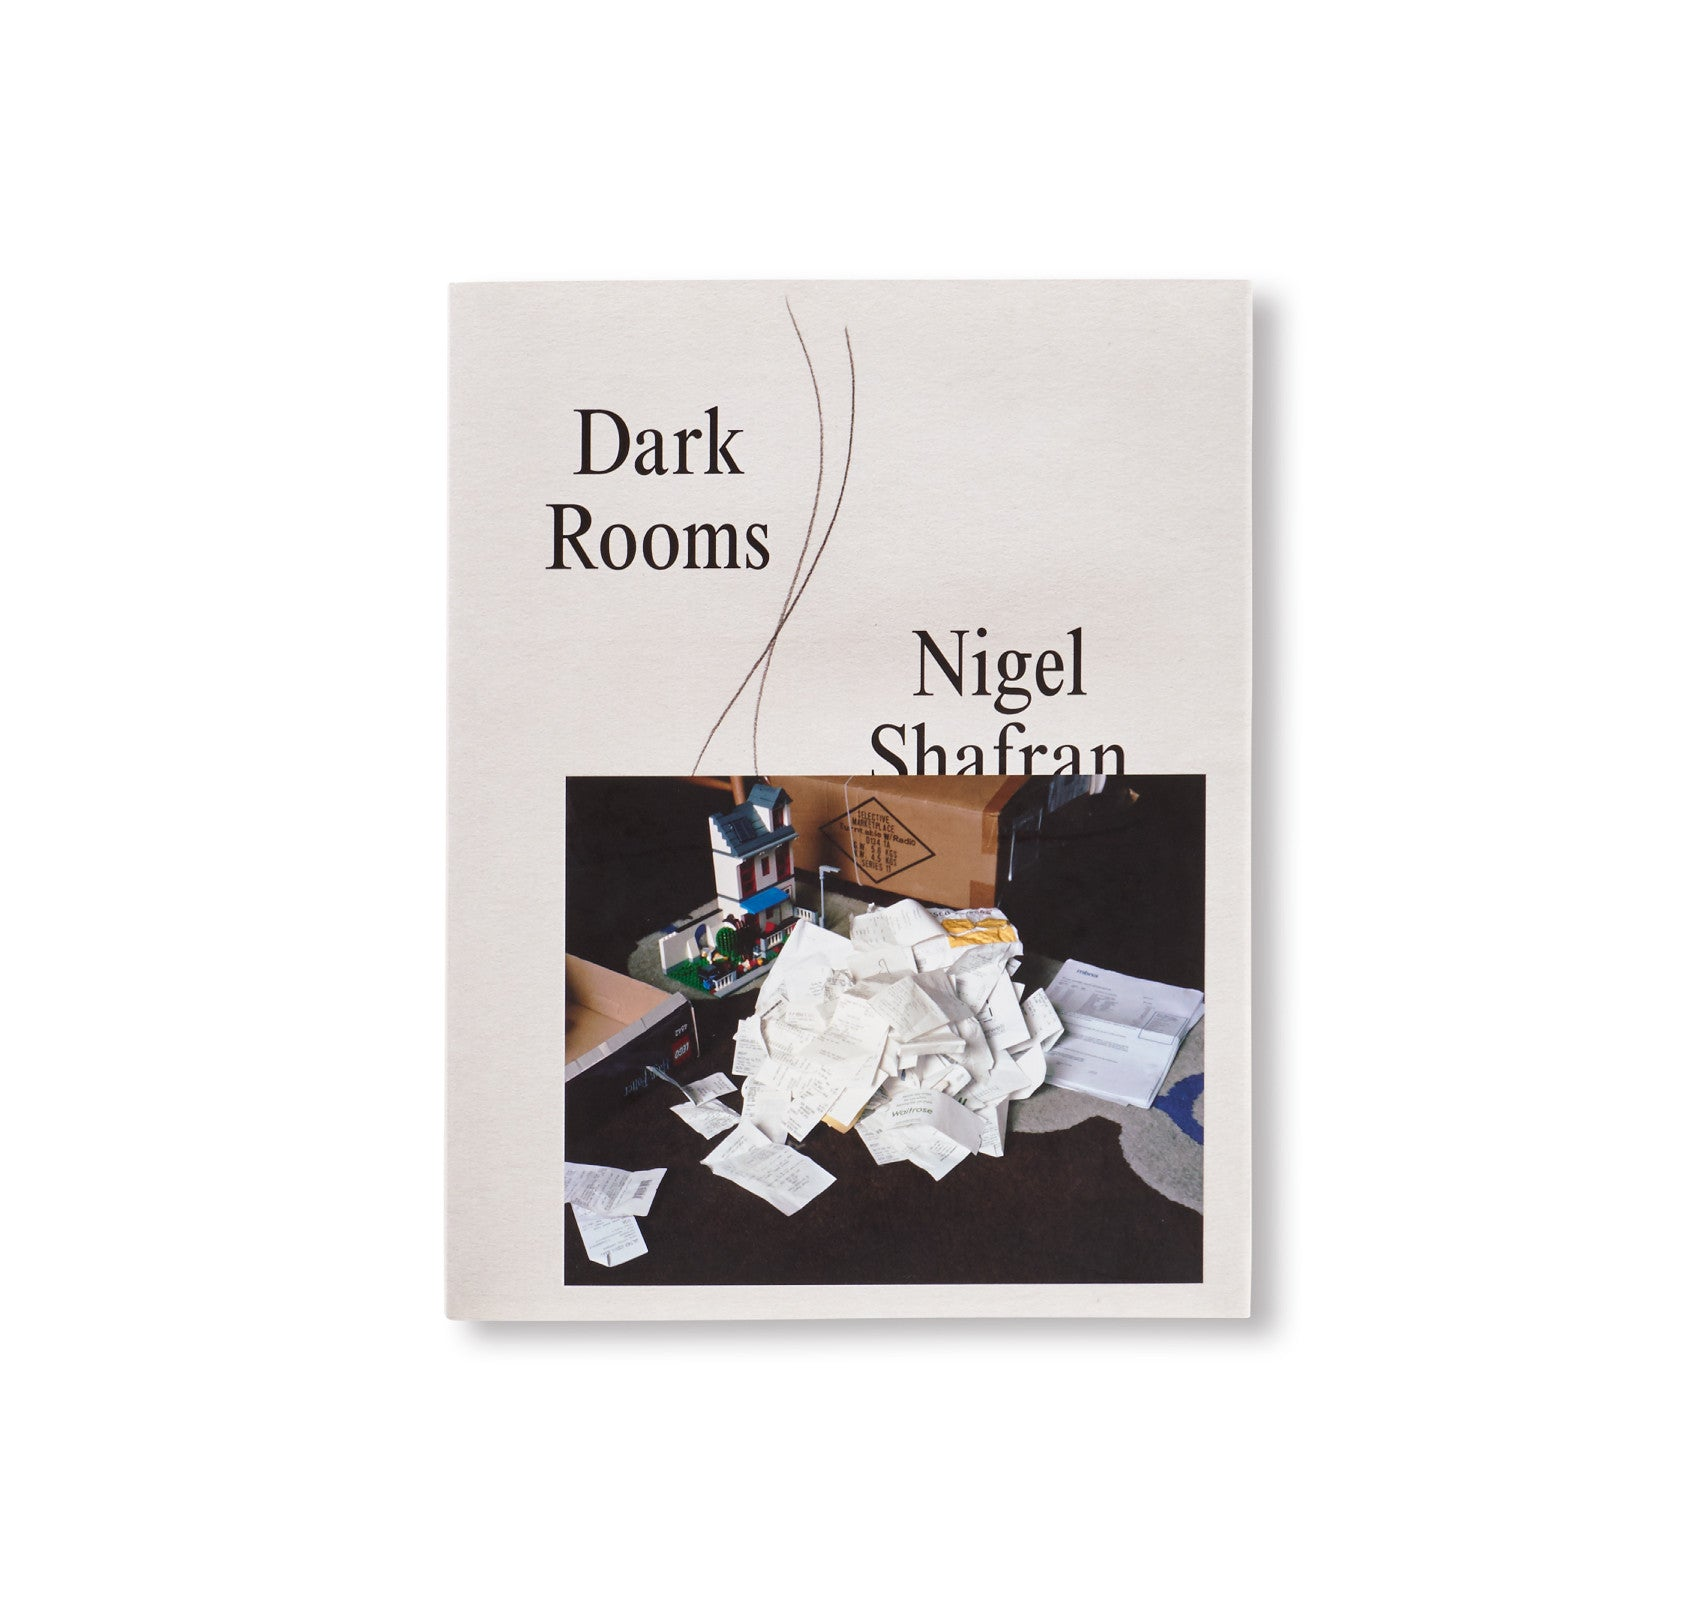 DARK ROOMS by Nigel Shafran [SIGNED]